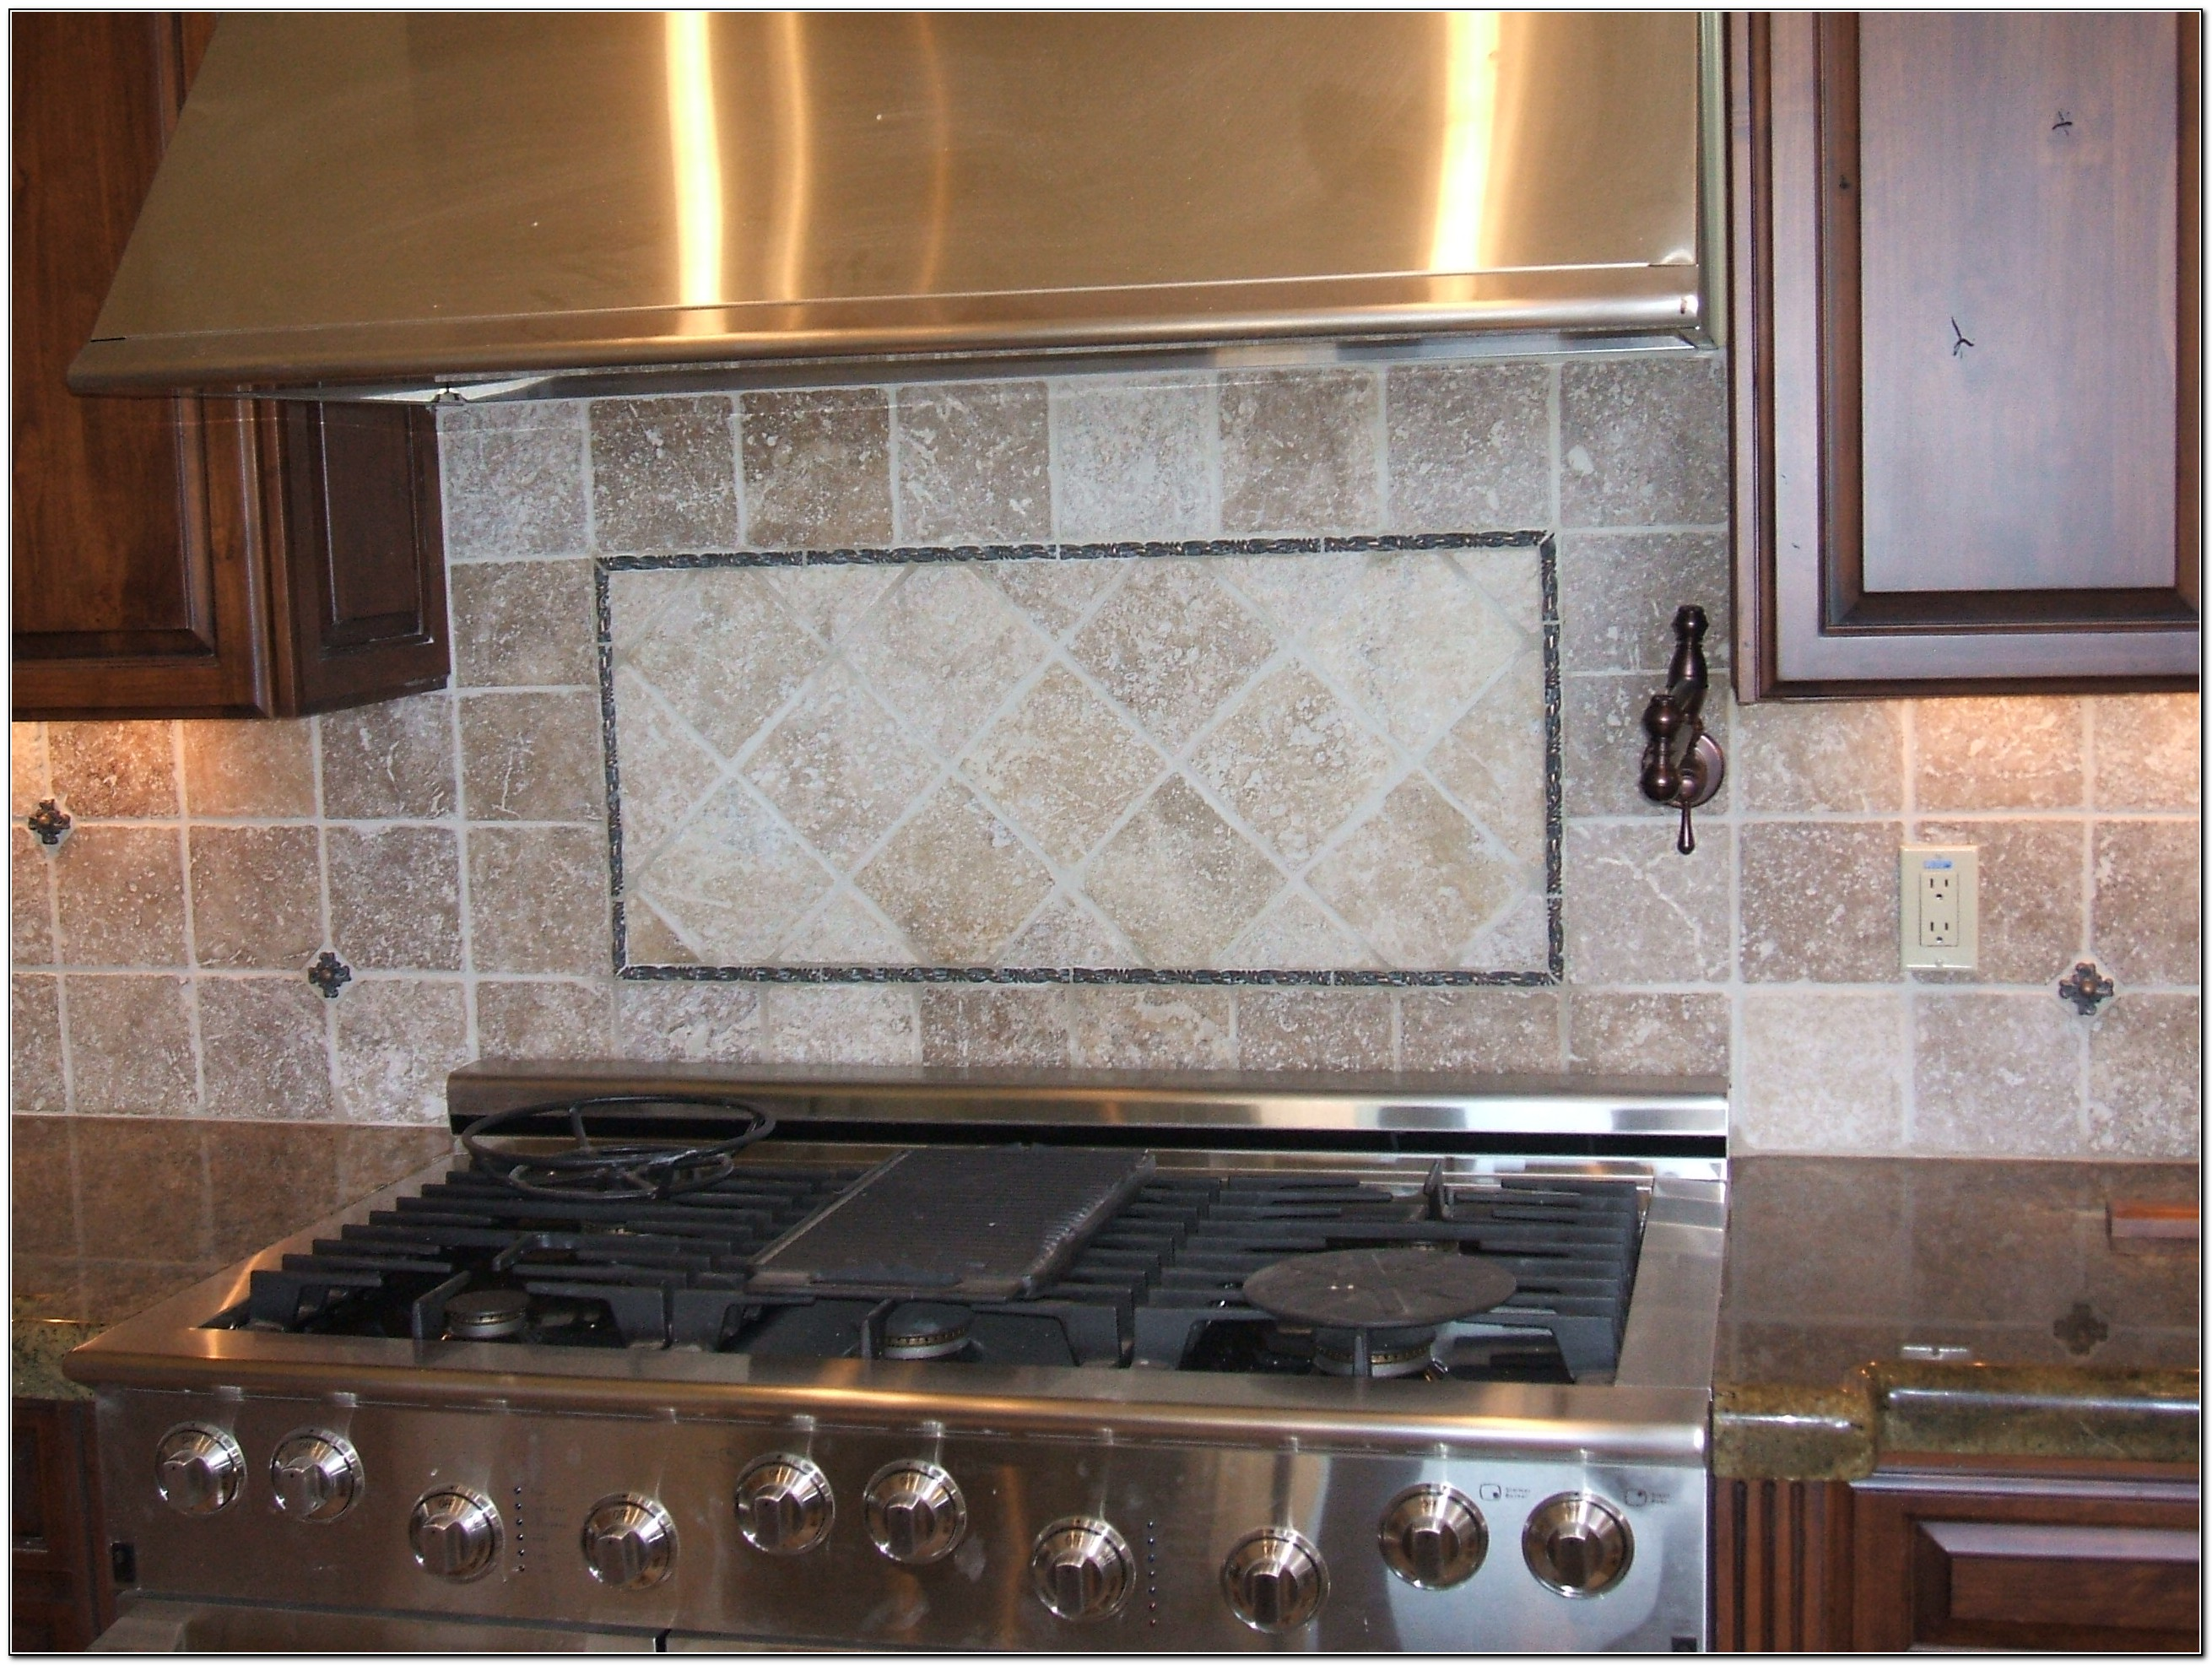 Kitchen Backsplash Ideas 2014 28 Images Kitchen